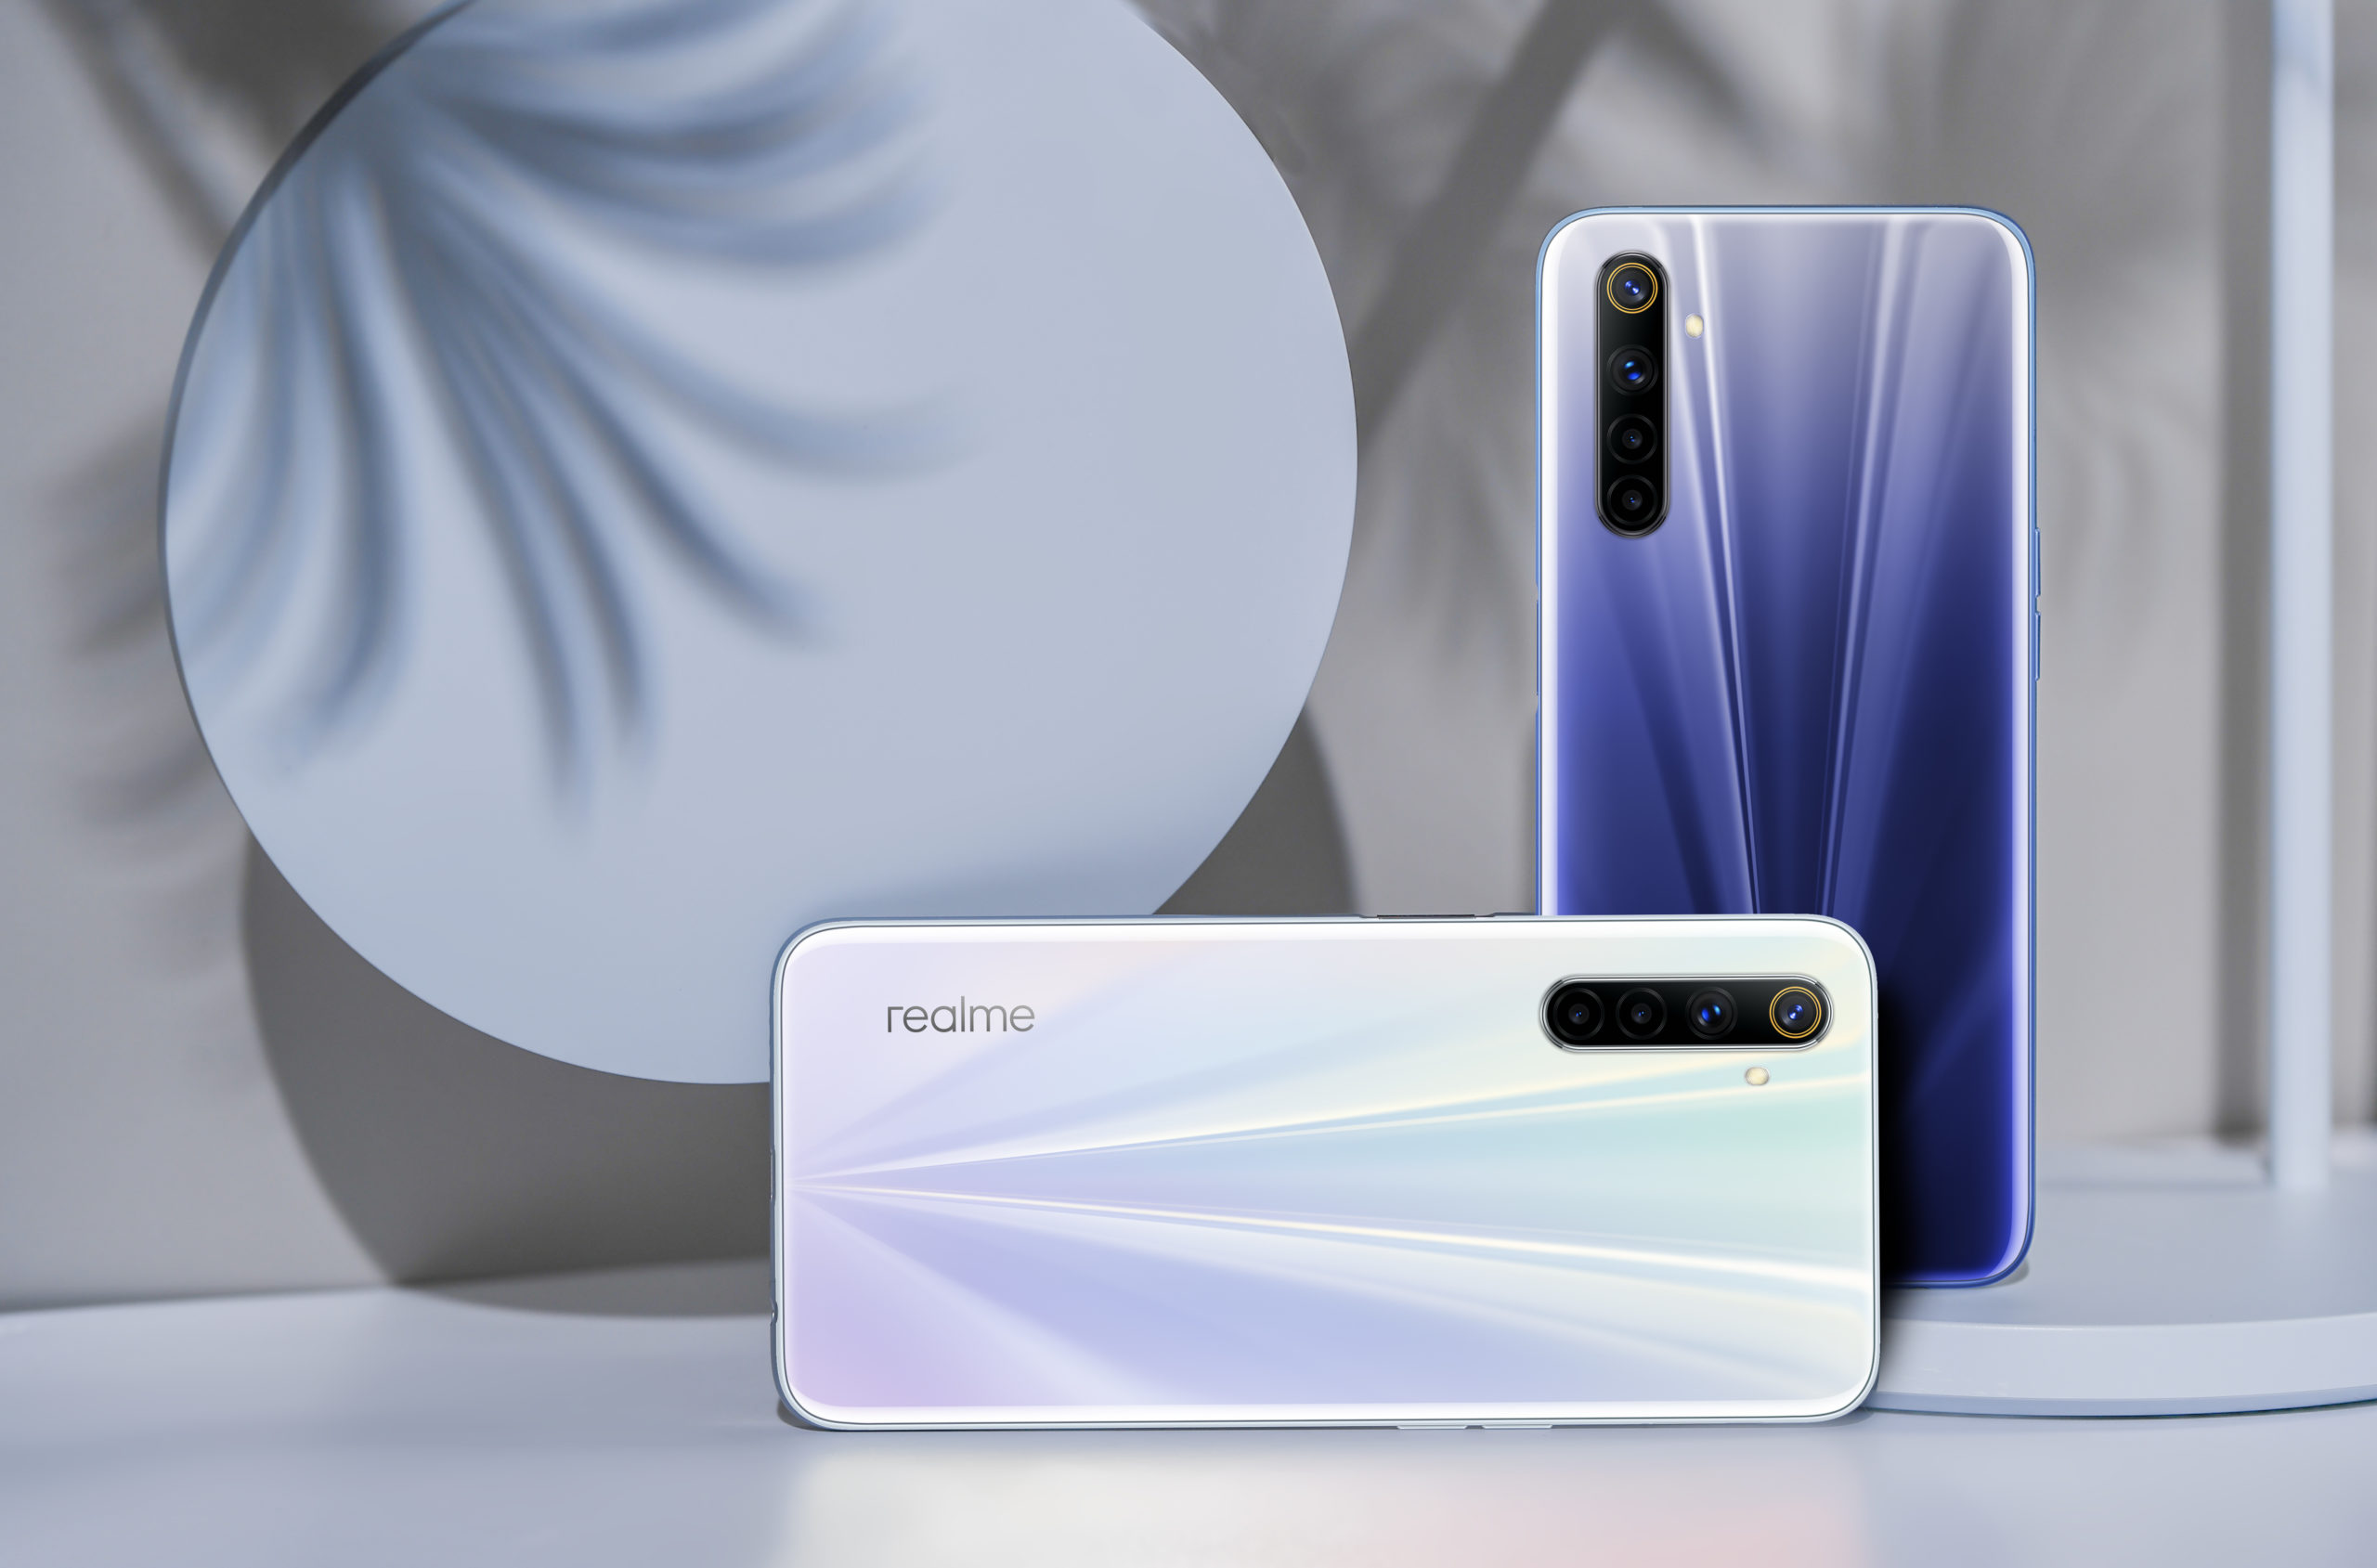 realme 6 Comet White and Comet Blue scaled